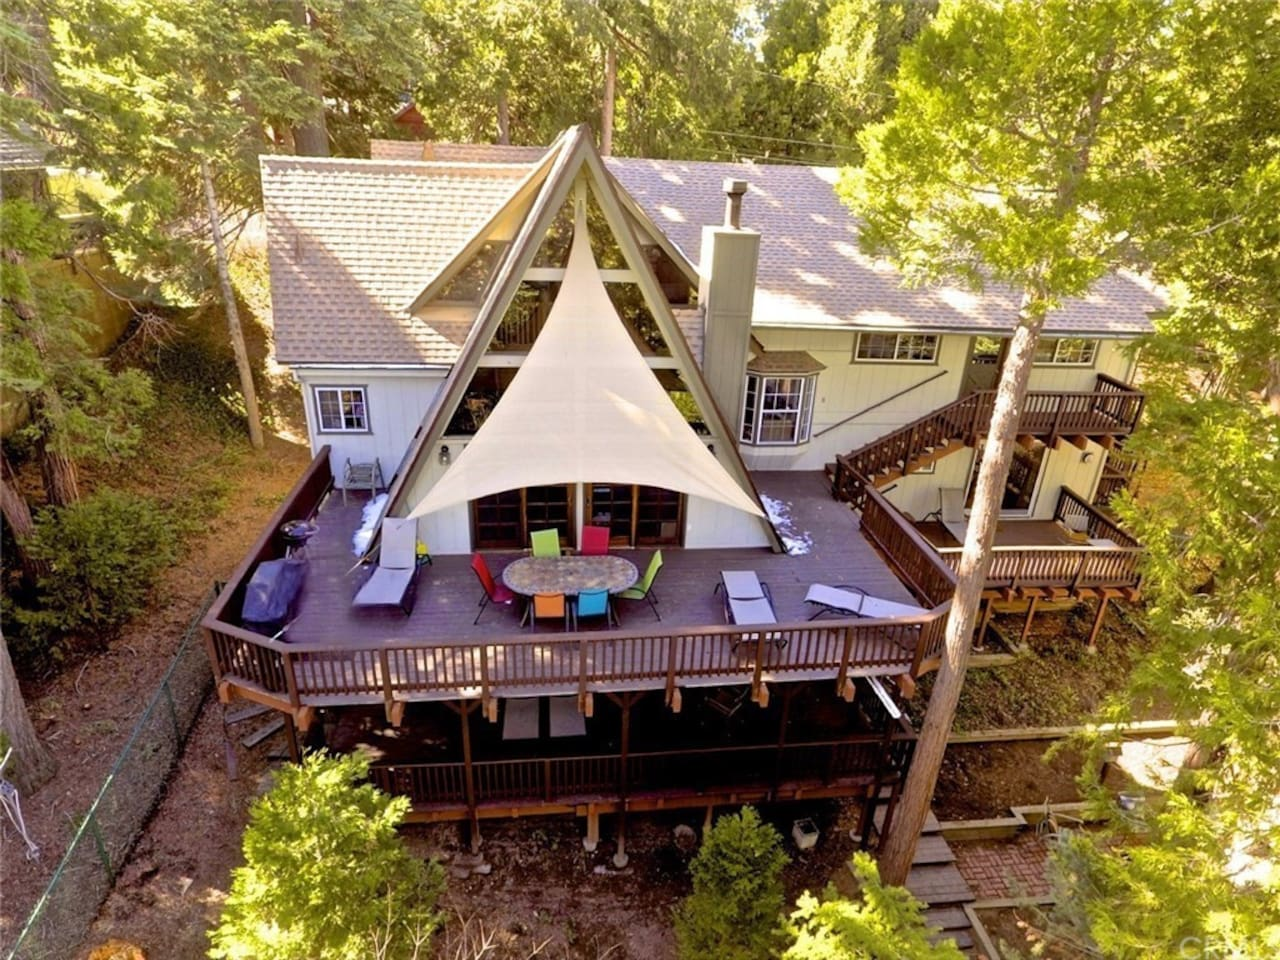 An aerial view of the home showing it's size, the large lovely decks and the beauty of it's forested surroundings. All 5 bedrooms - indeed almost every room - has french doors or sliding doors out to a deck or patio area. Enjoy the feel of privacy!